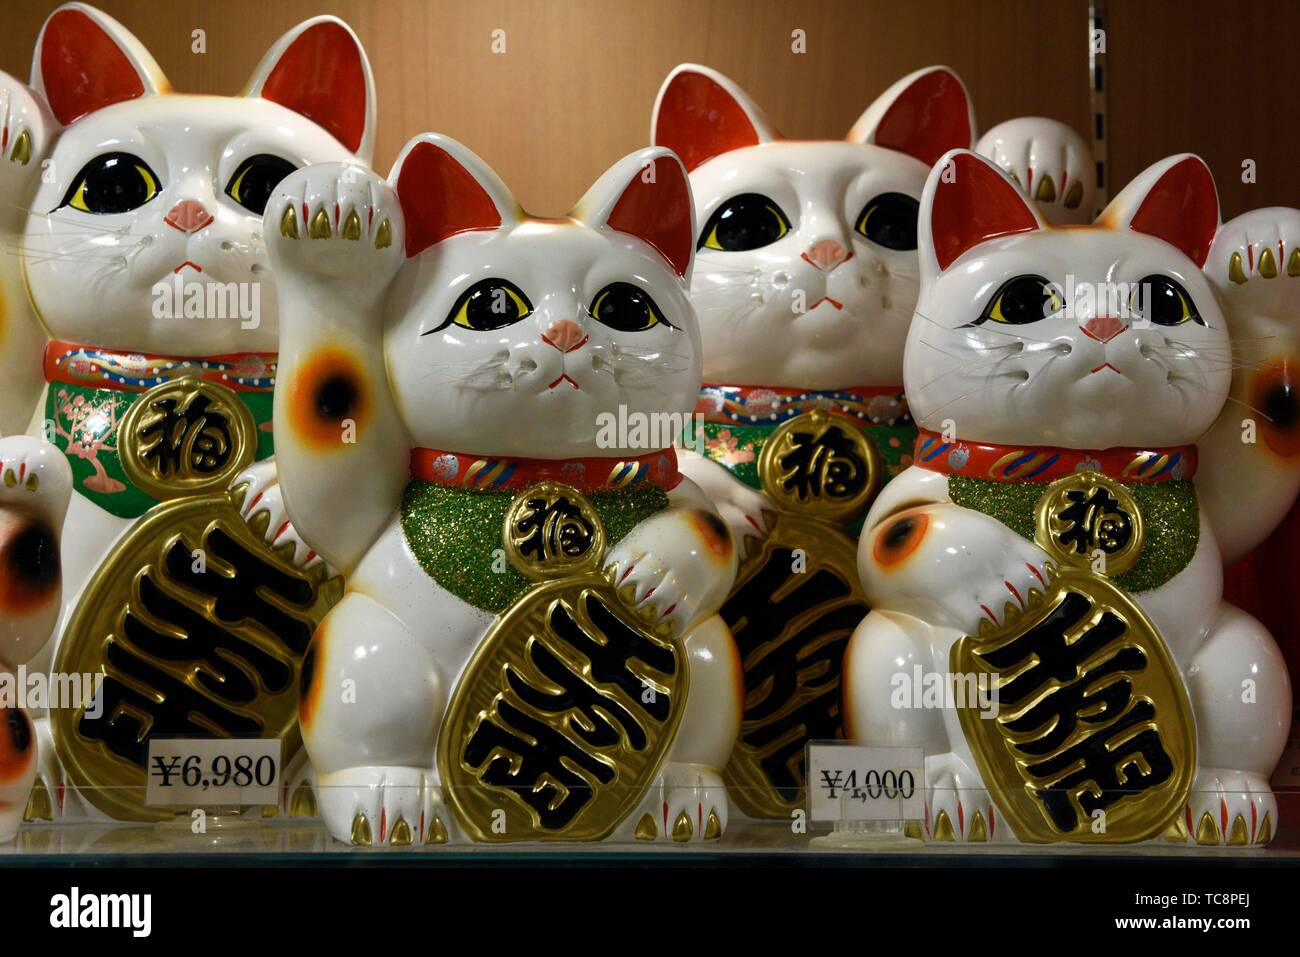 Miniature lucky cats for sale in Ise, Japan, Asia. - Stock Image